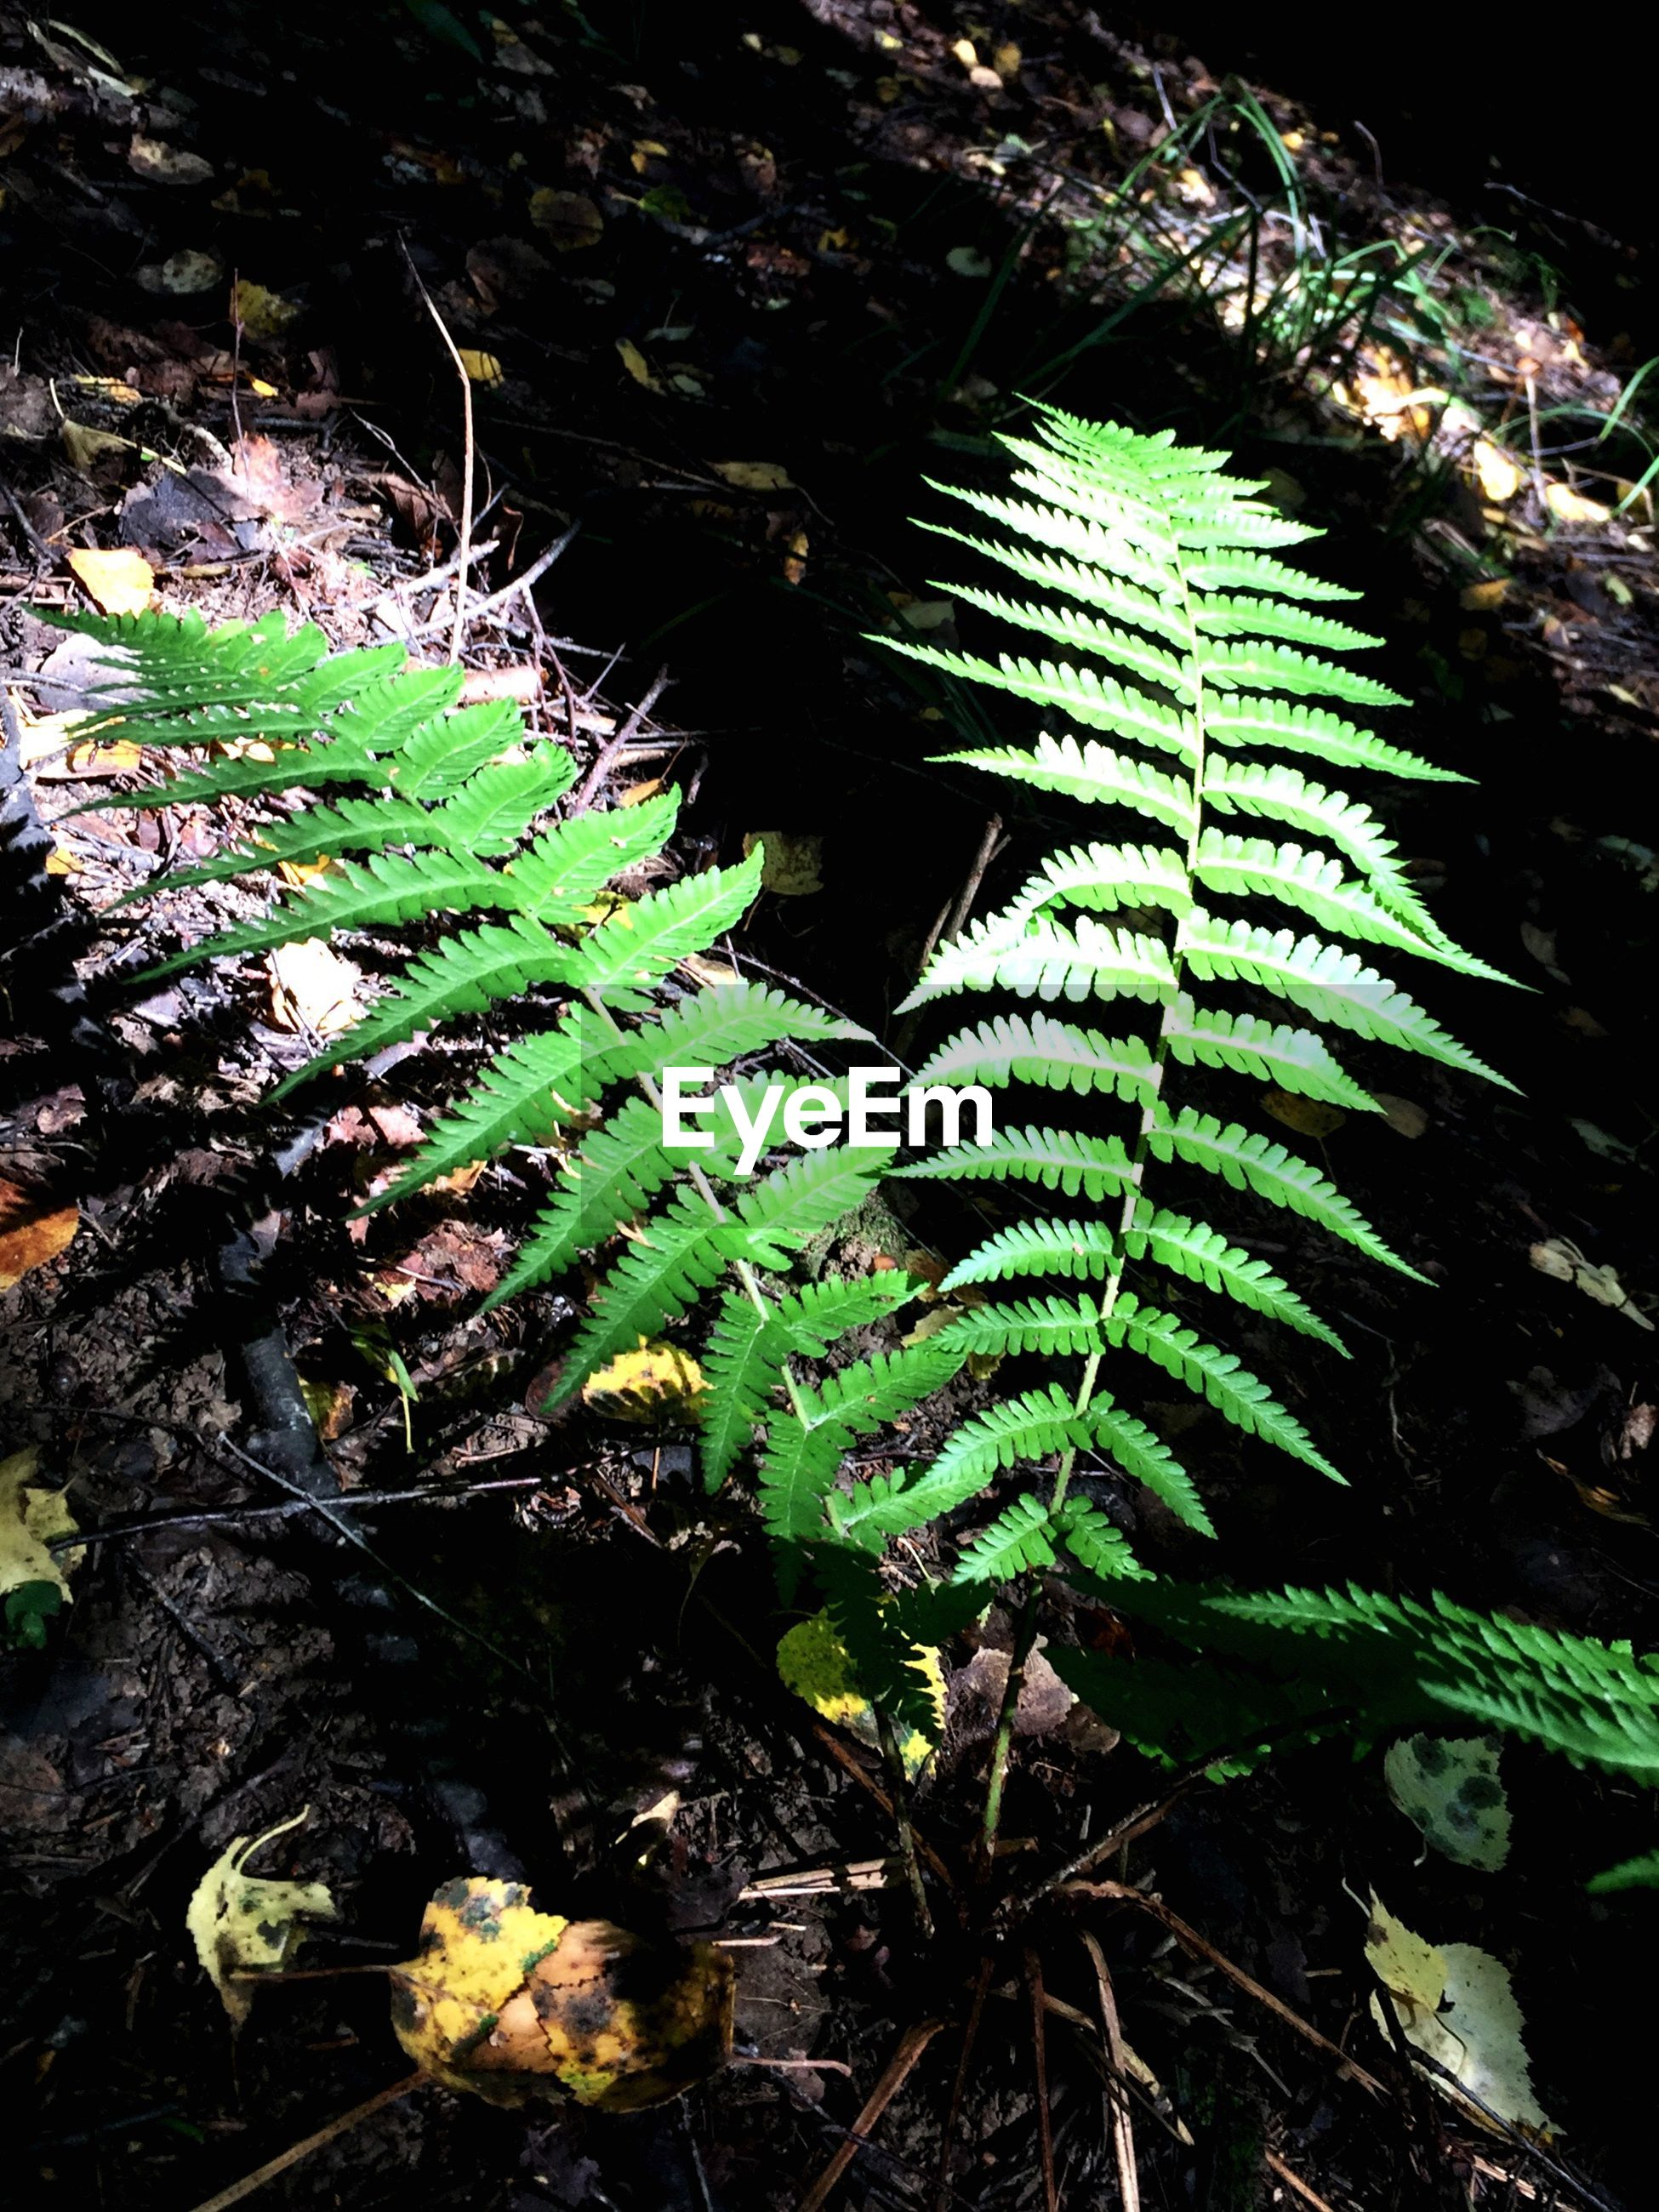 growth, plant, green color, leaf, close-up, nature, fern, branch, botany, beauty in nature, outdoors, tranquility, day, scenics, freshness, focus on foreground, plant life, fragility, green, evergreen tree, lush foliage, no people, tranquil scene, thorn